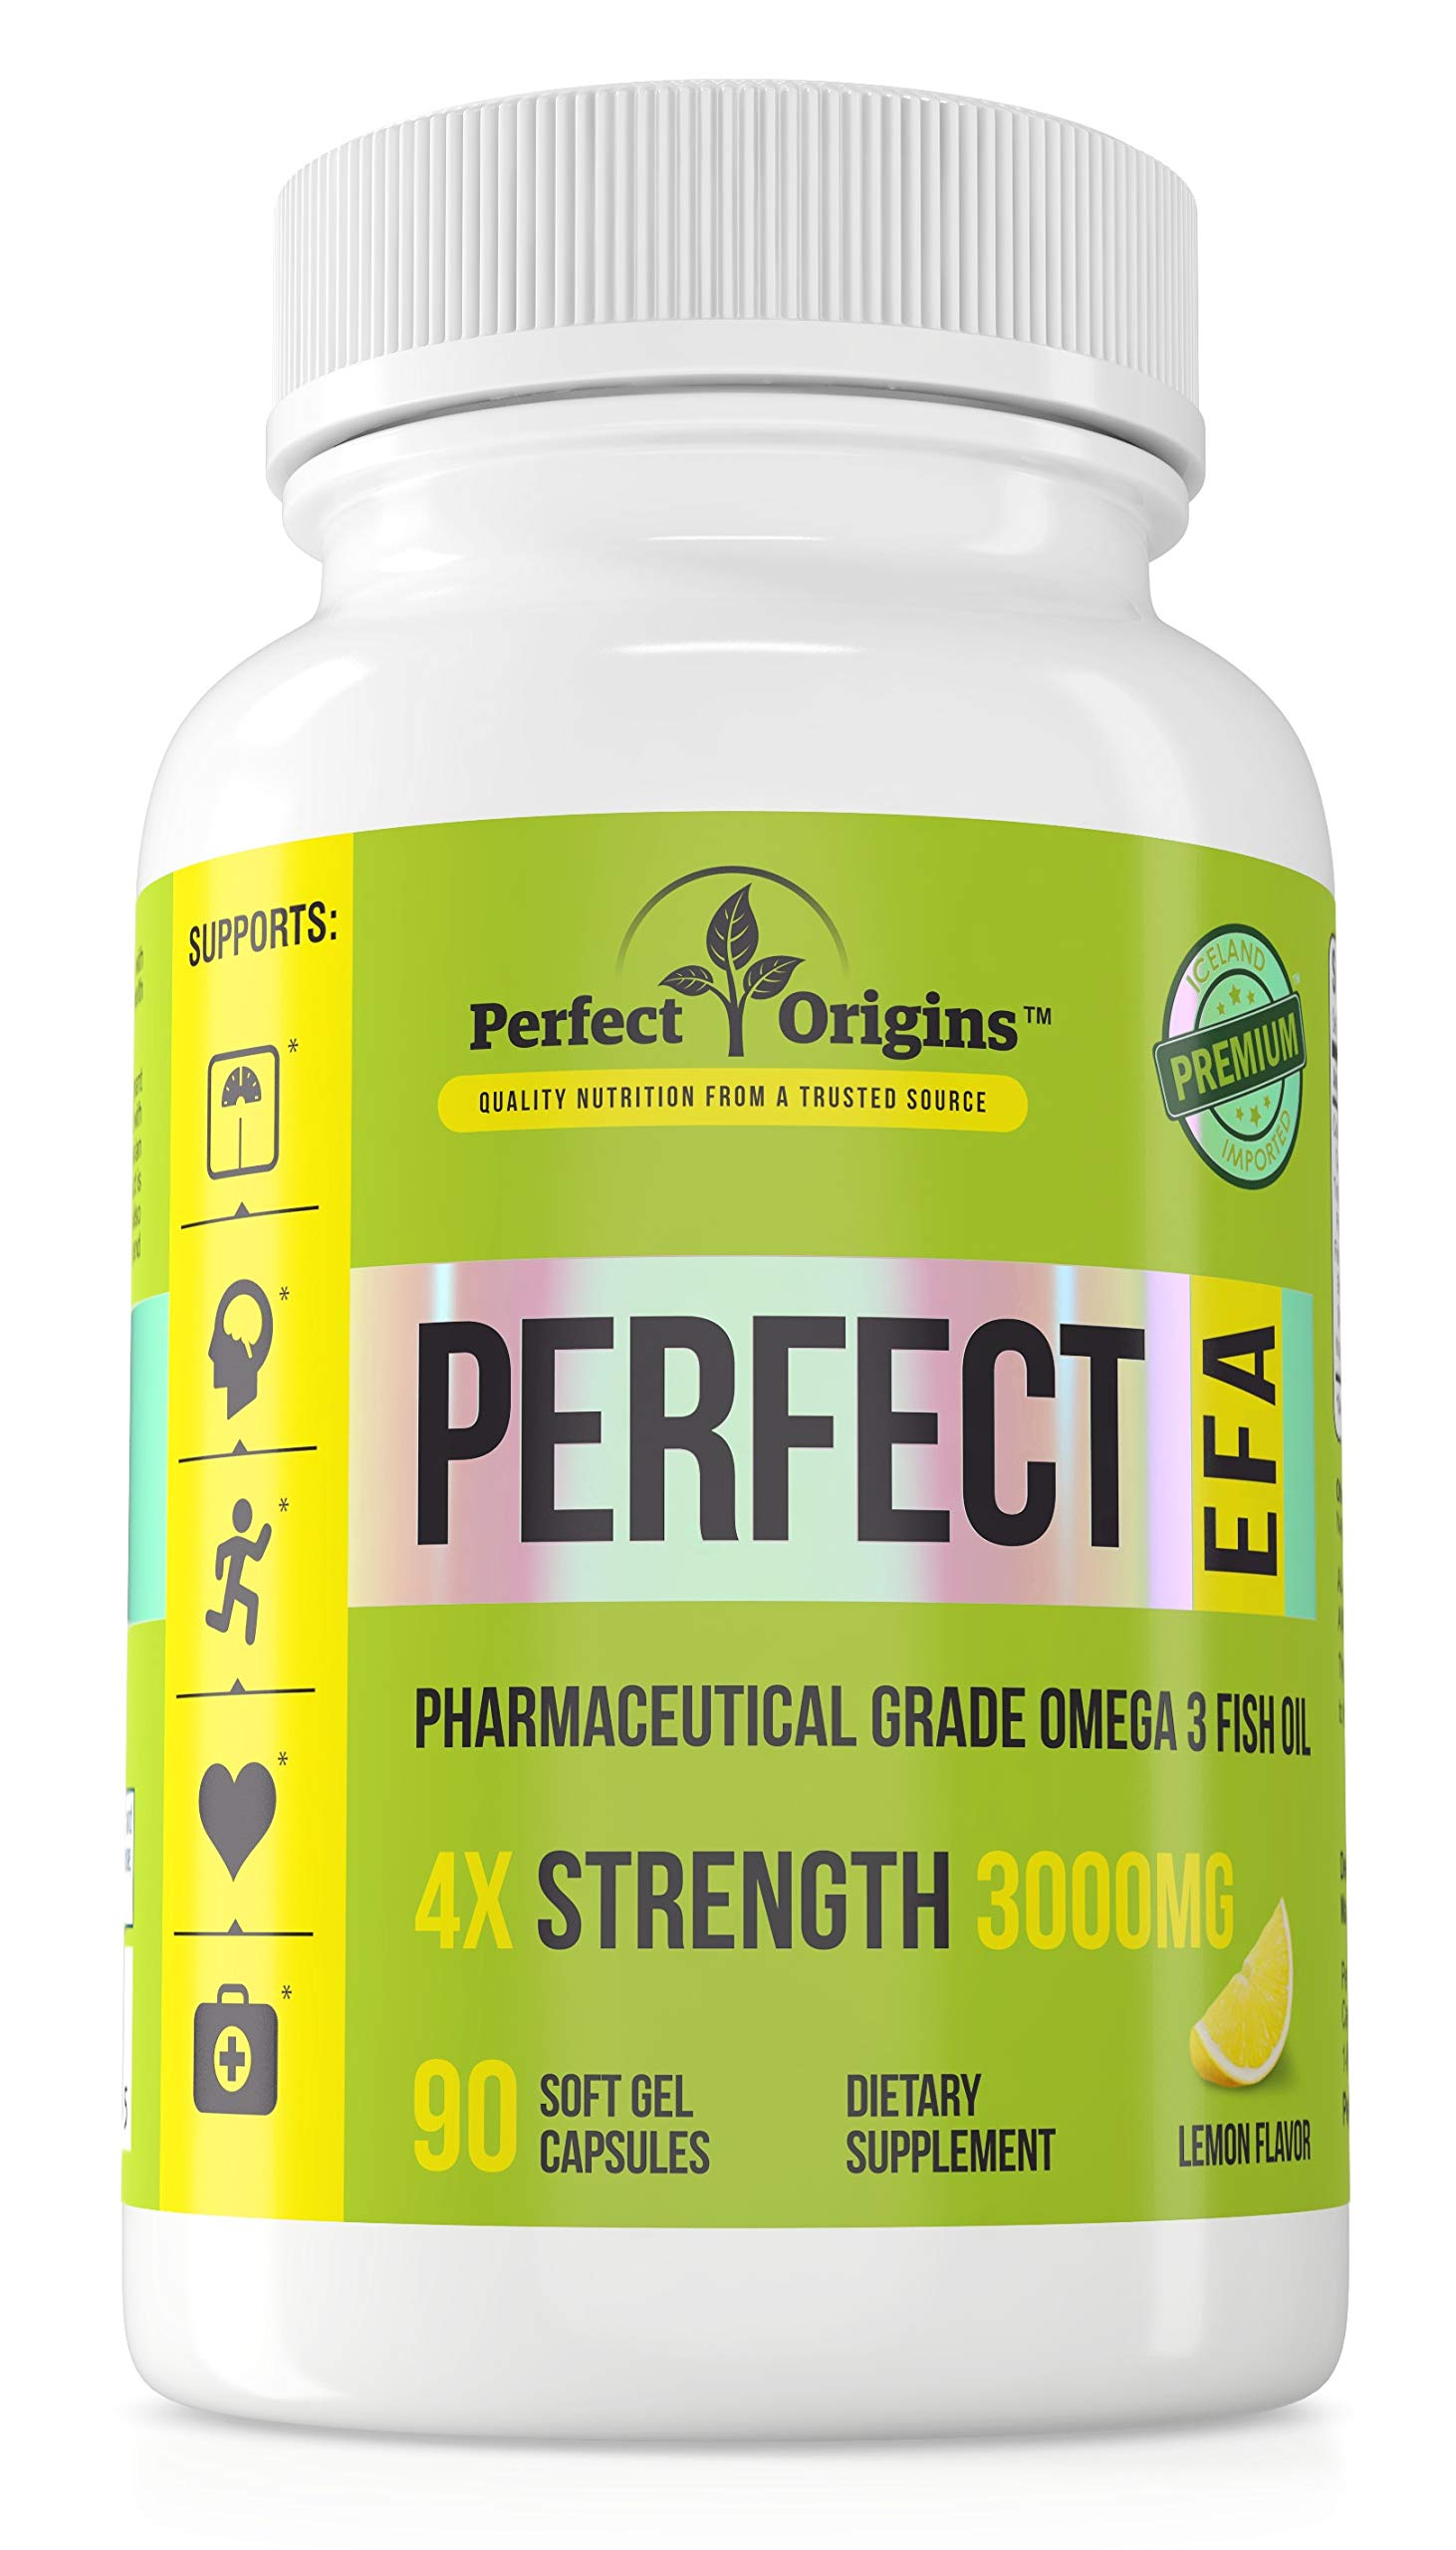 Perfect Origins Perfect EFA, High-Strength Omega 3 for Metabolism, Liver, Thyroid, Heart, Cholesterol, Joints, and Mood